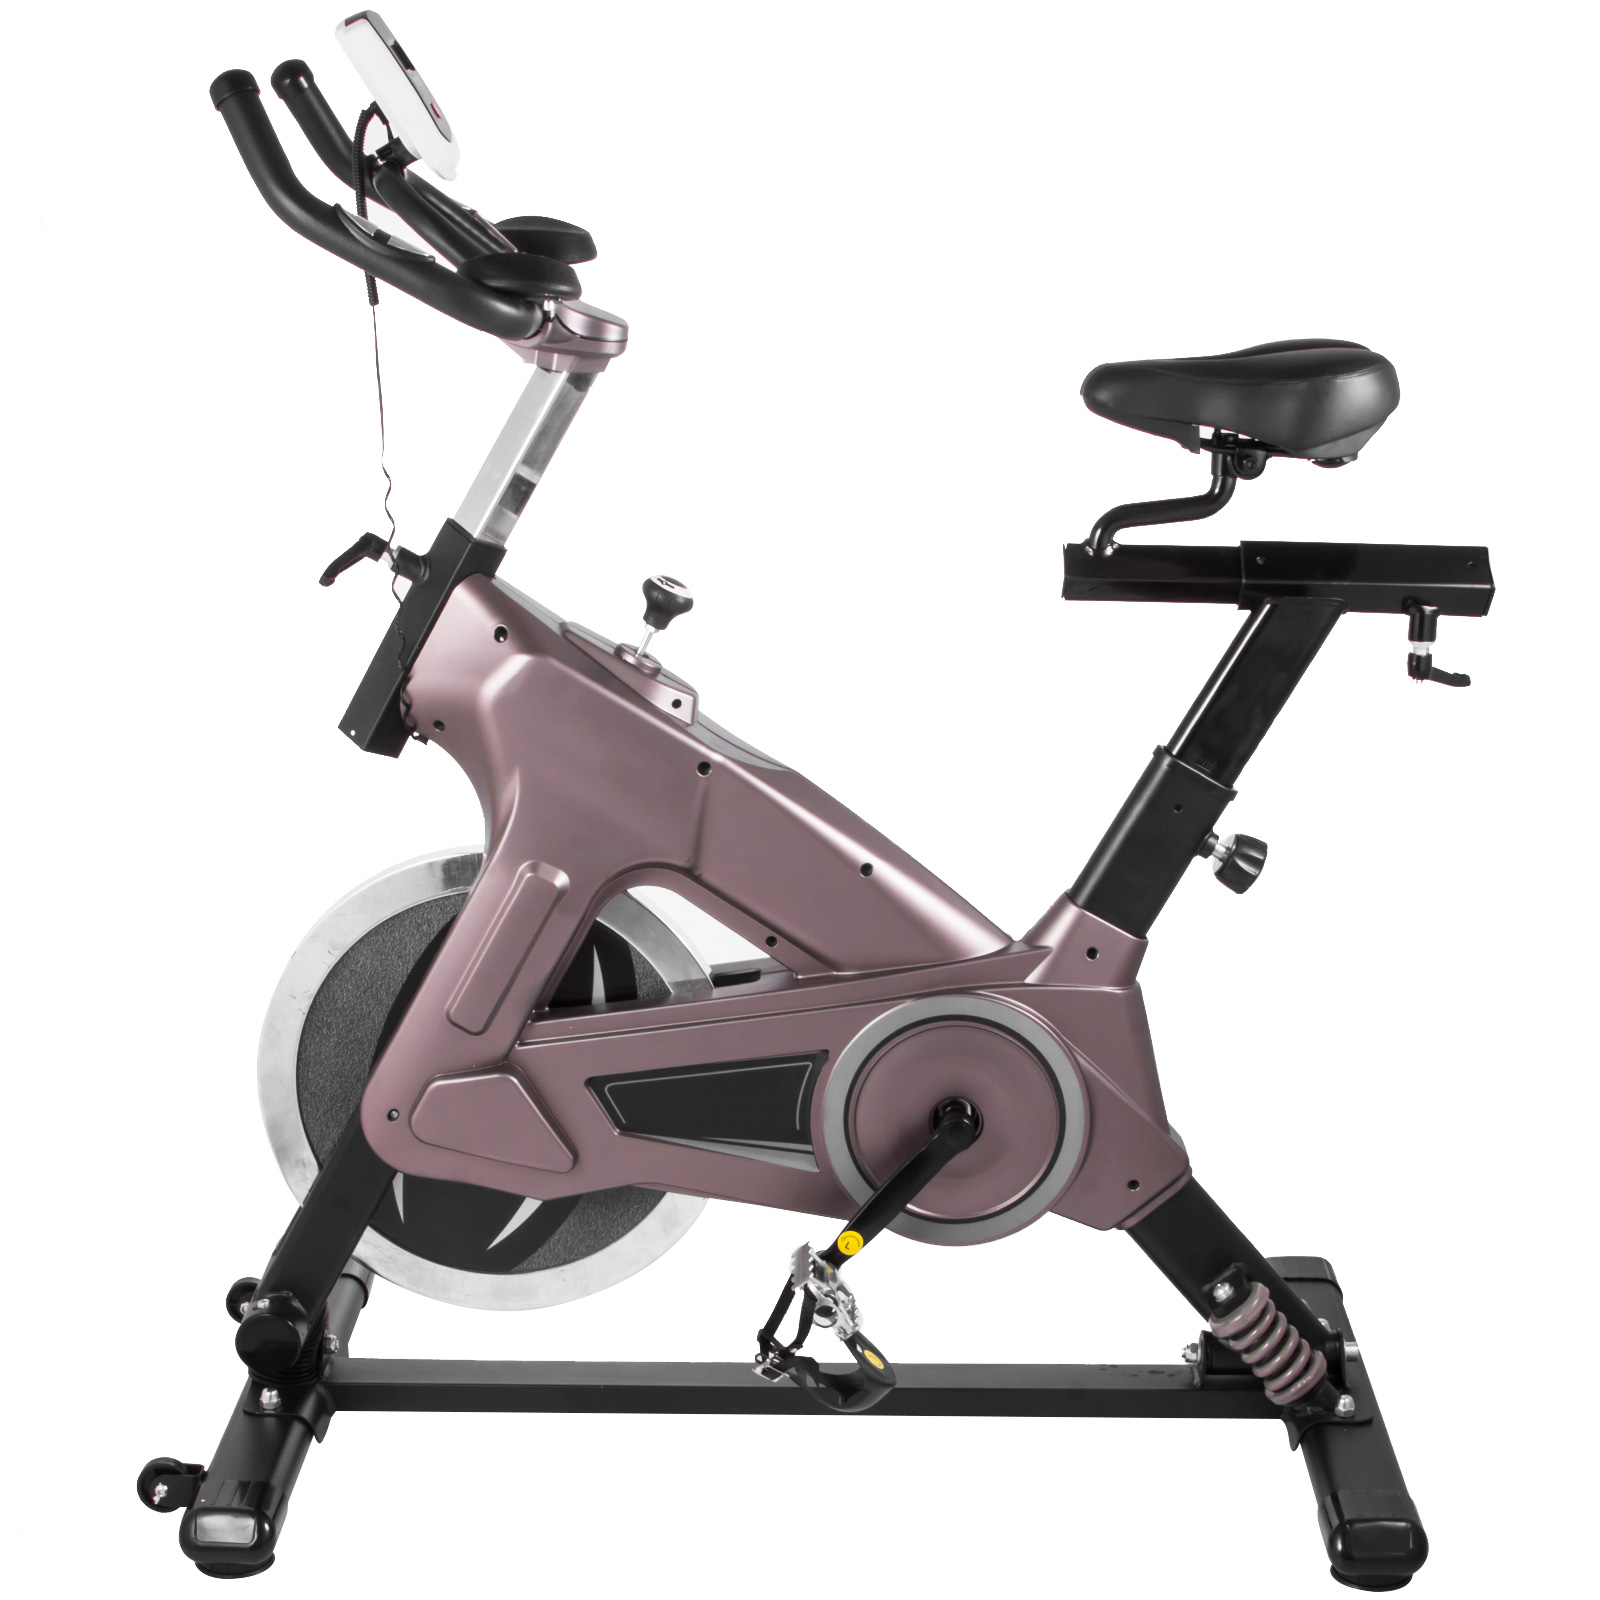 Multi-style-Magnetic-Exercise-Bike-office-Bicycle-under-Desk-Fitness-Cardio miniature 154